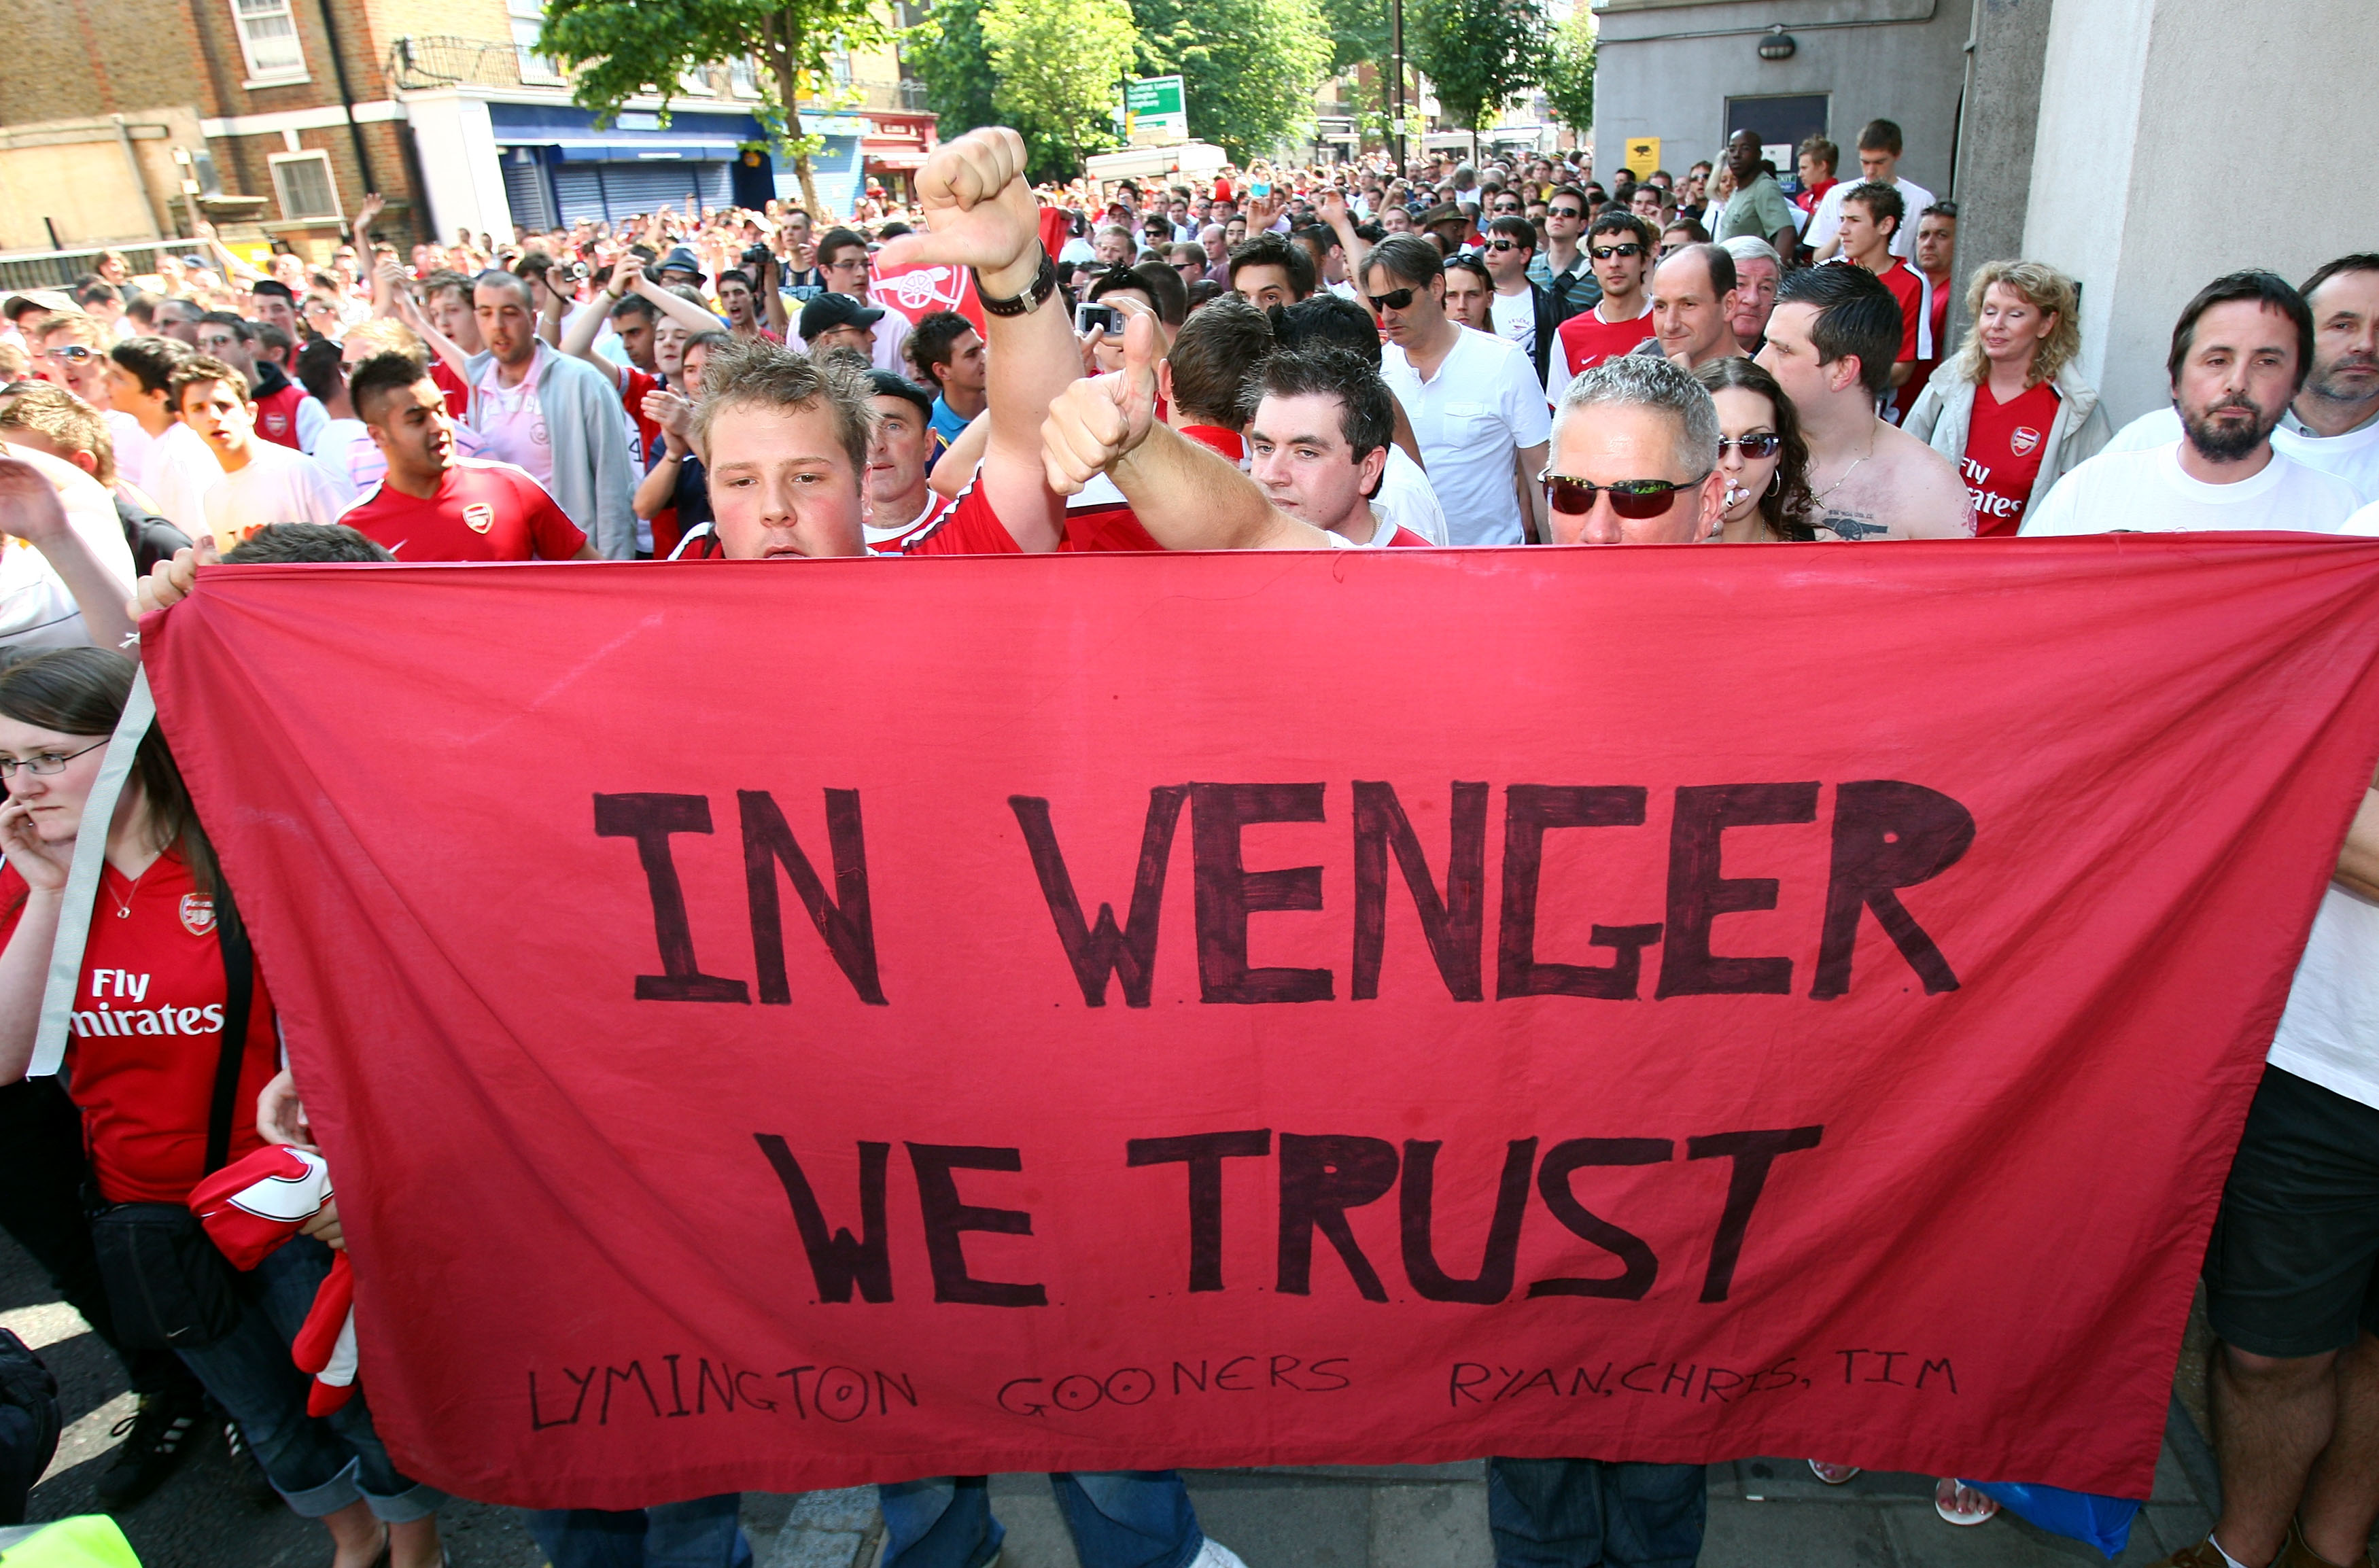 LONDON, ENGLAND - MAY 24:  Arsenal fans participate in a planned rally in support of their manager Arsene Wenger before the Barclays Premier League match between Arsenal and Stoke City at Emirates Stadium on May 24, 2009 in London, England.  (Photo by Rya